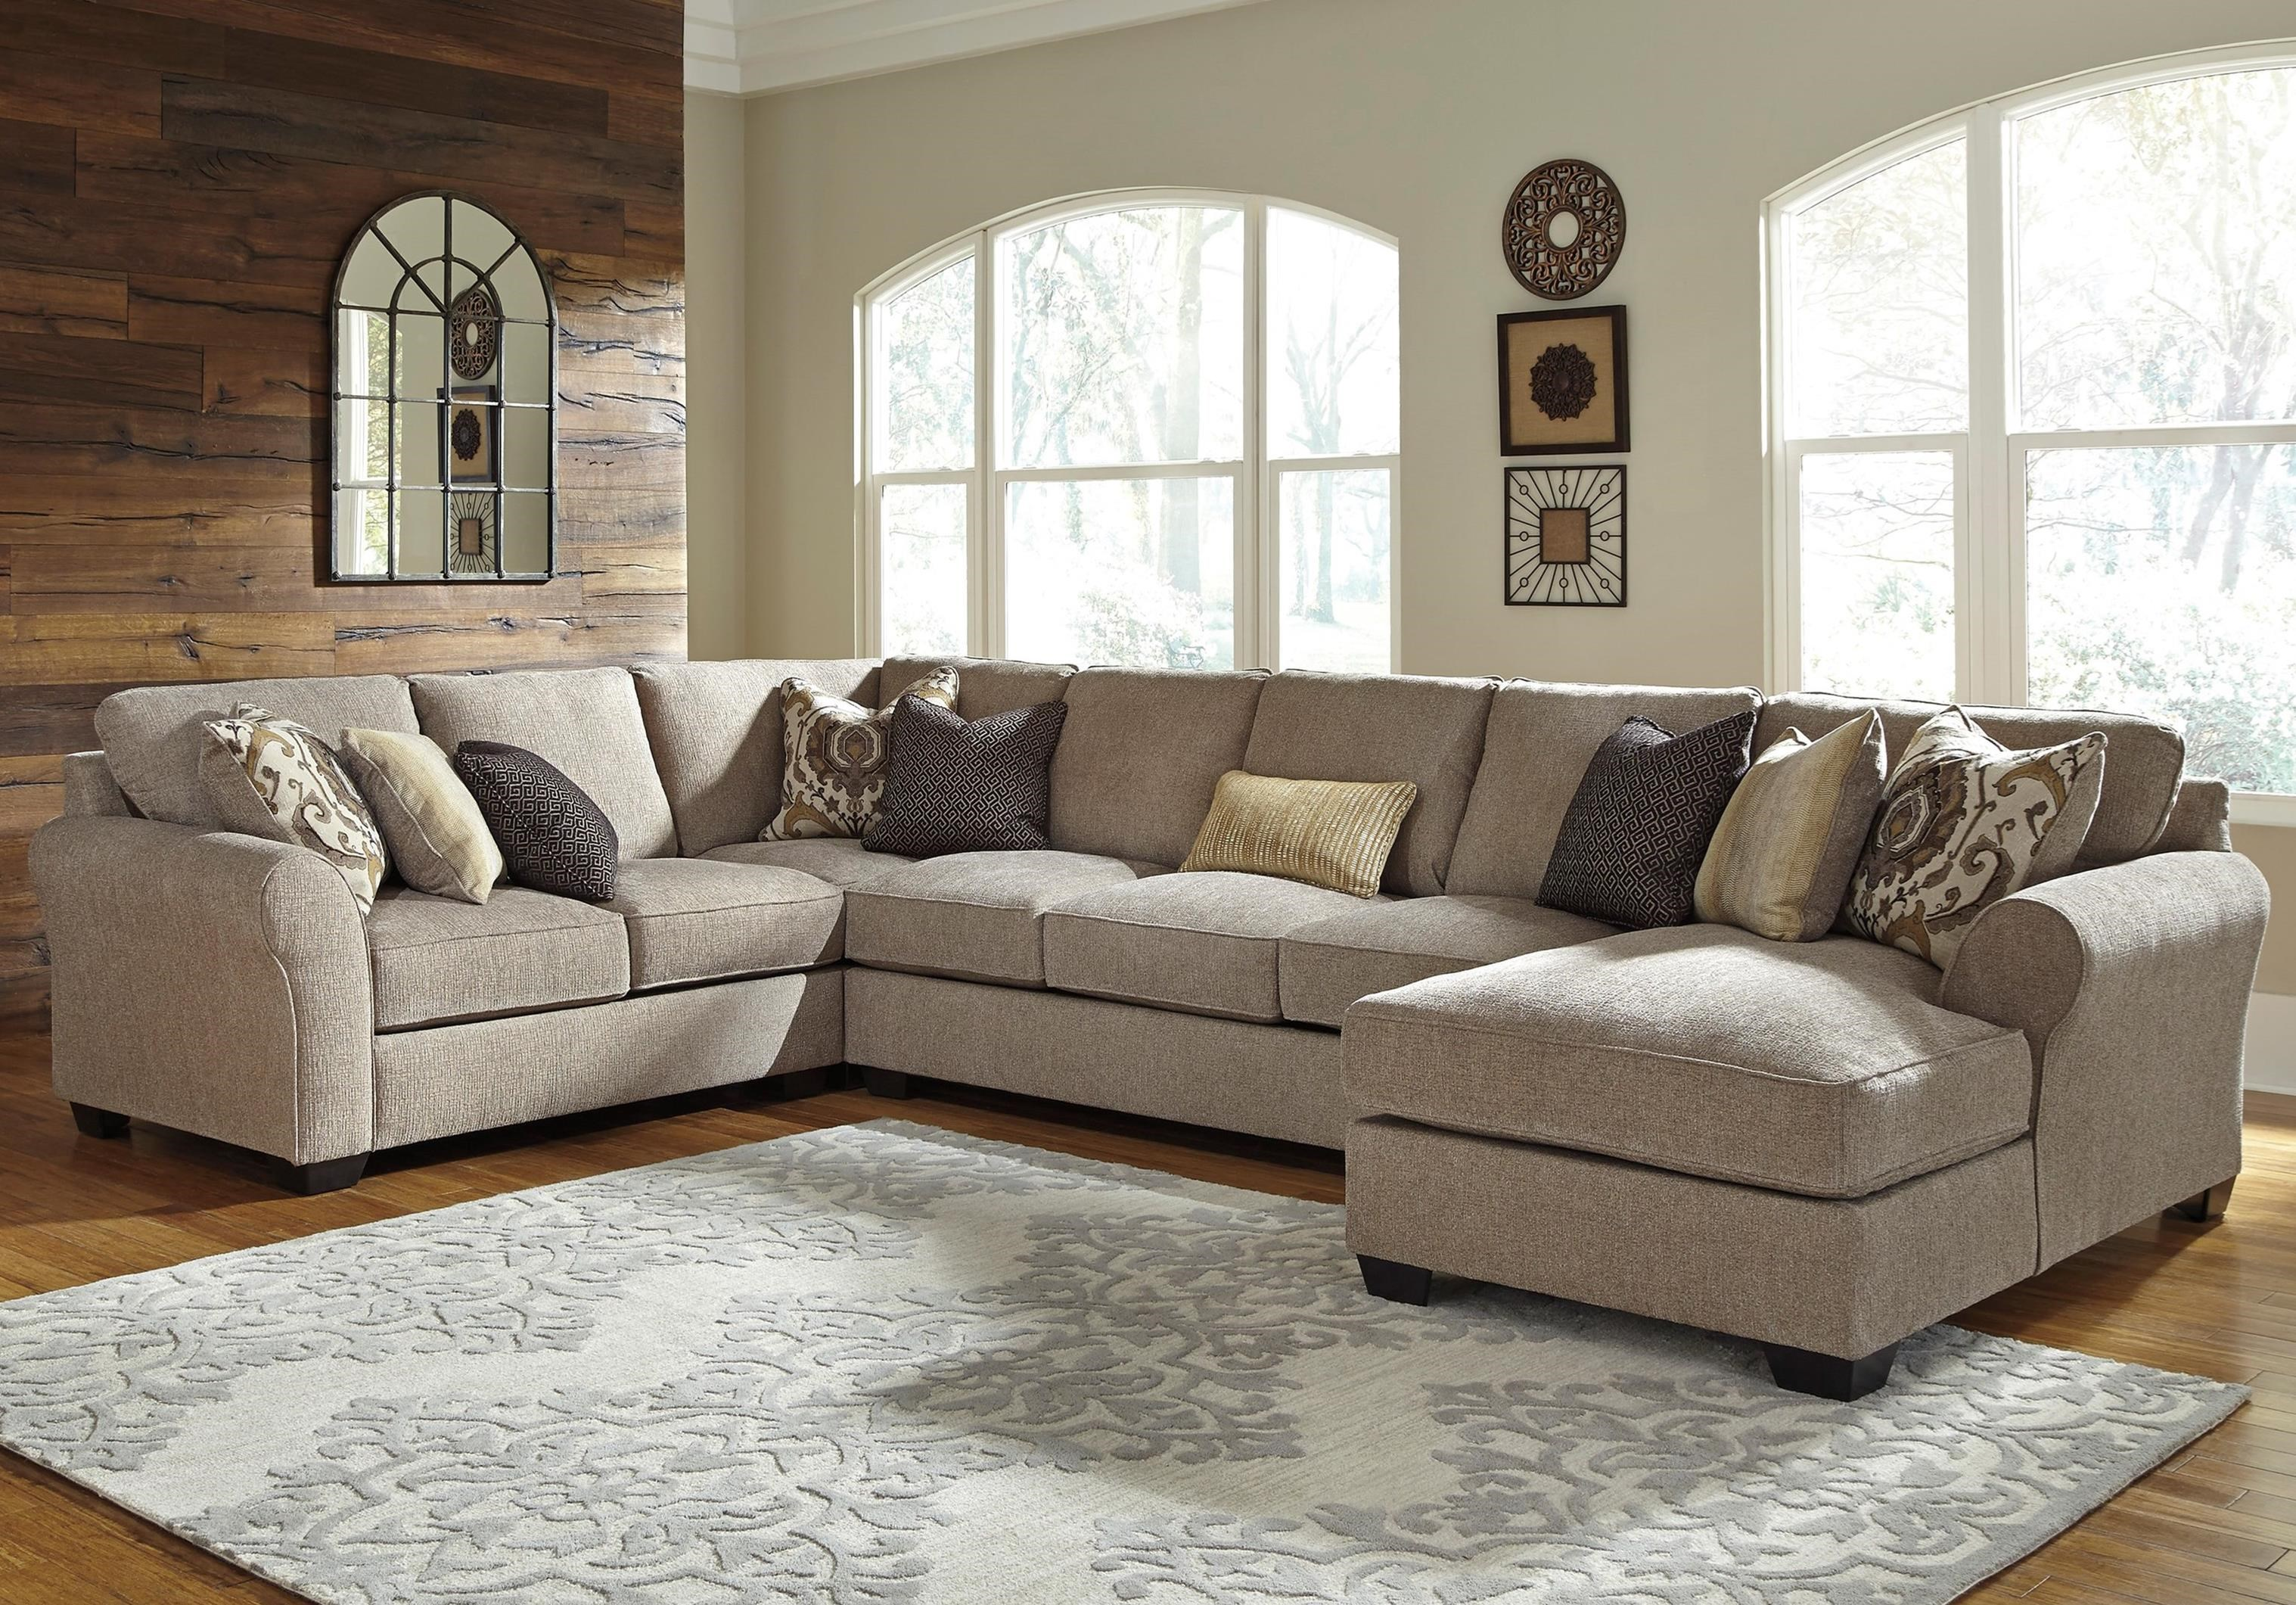 4 piece recliner sectional sofa buy cushions online pantomine with right chaise and armless